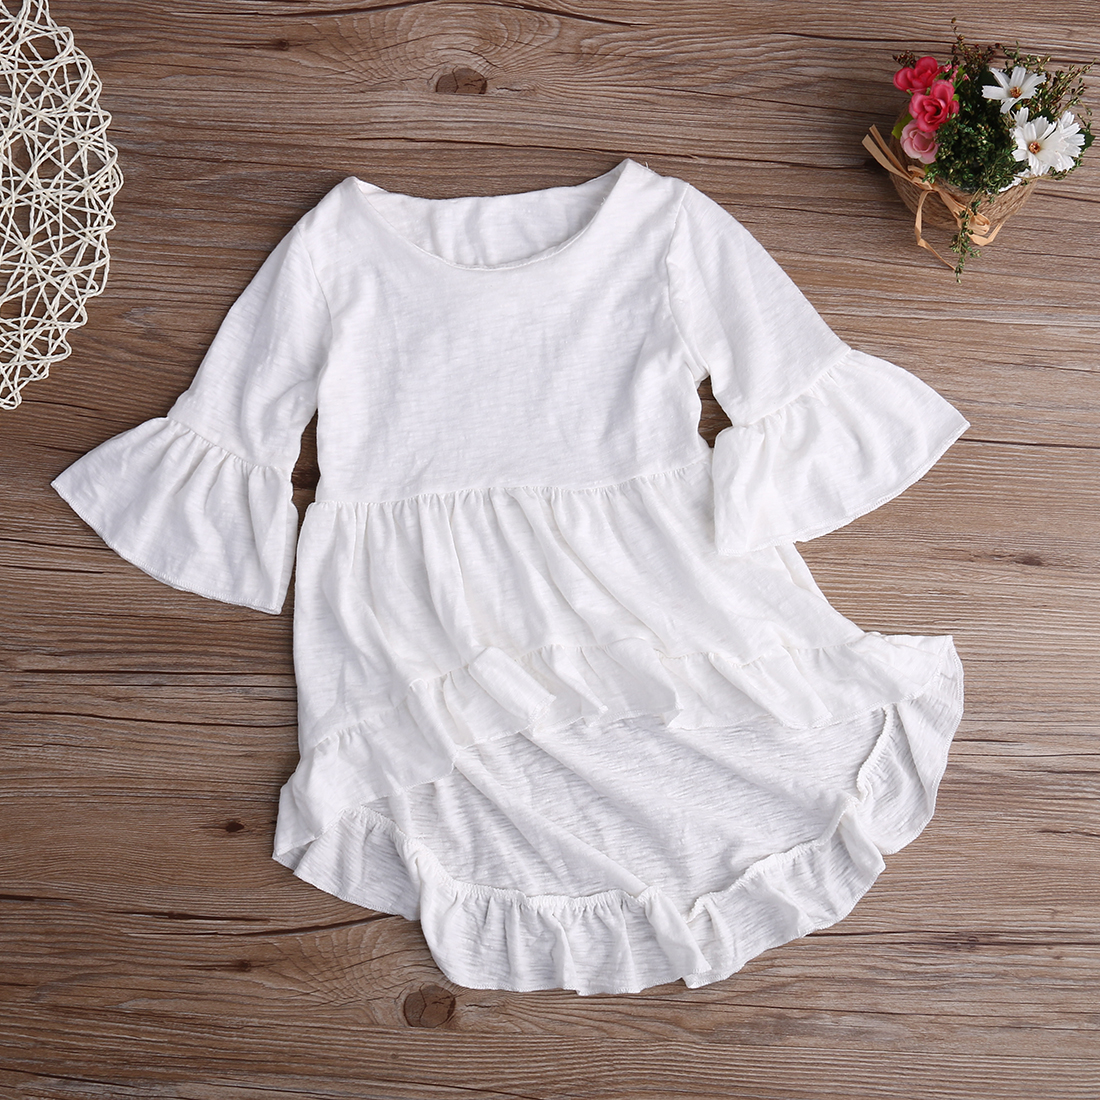 White Baby Girls Dress Frills Flare Sleeve Top T-Shirt Party Ruffles Hem Dresses 1-6Y contrast striped petal sleeve dip hem shirt